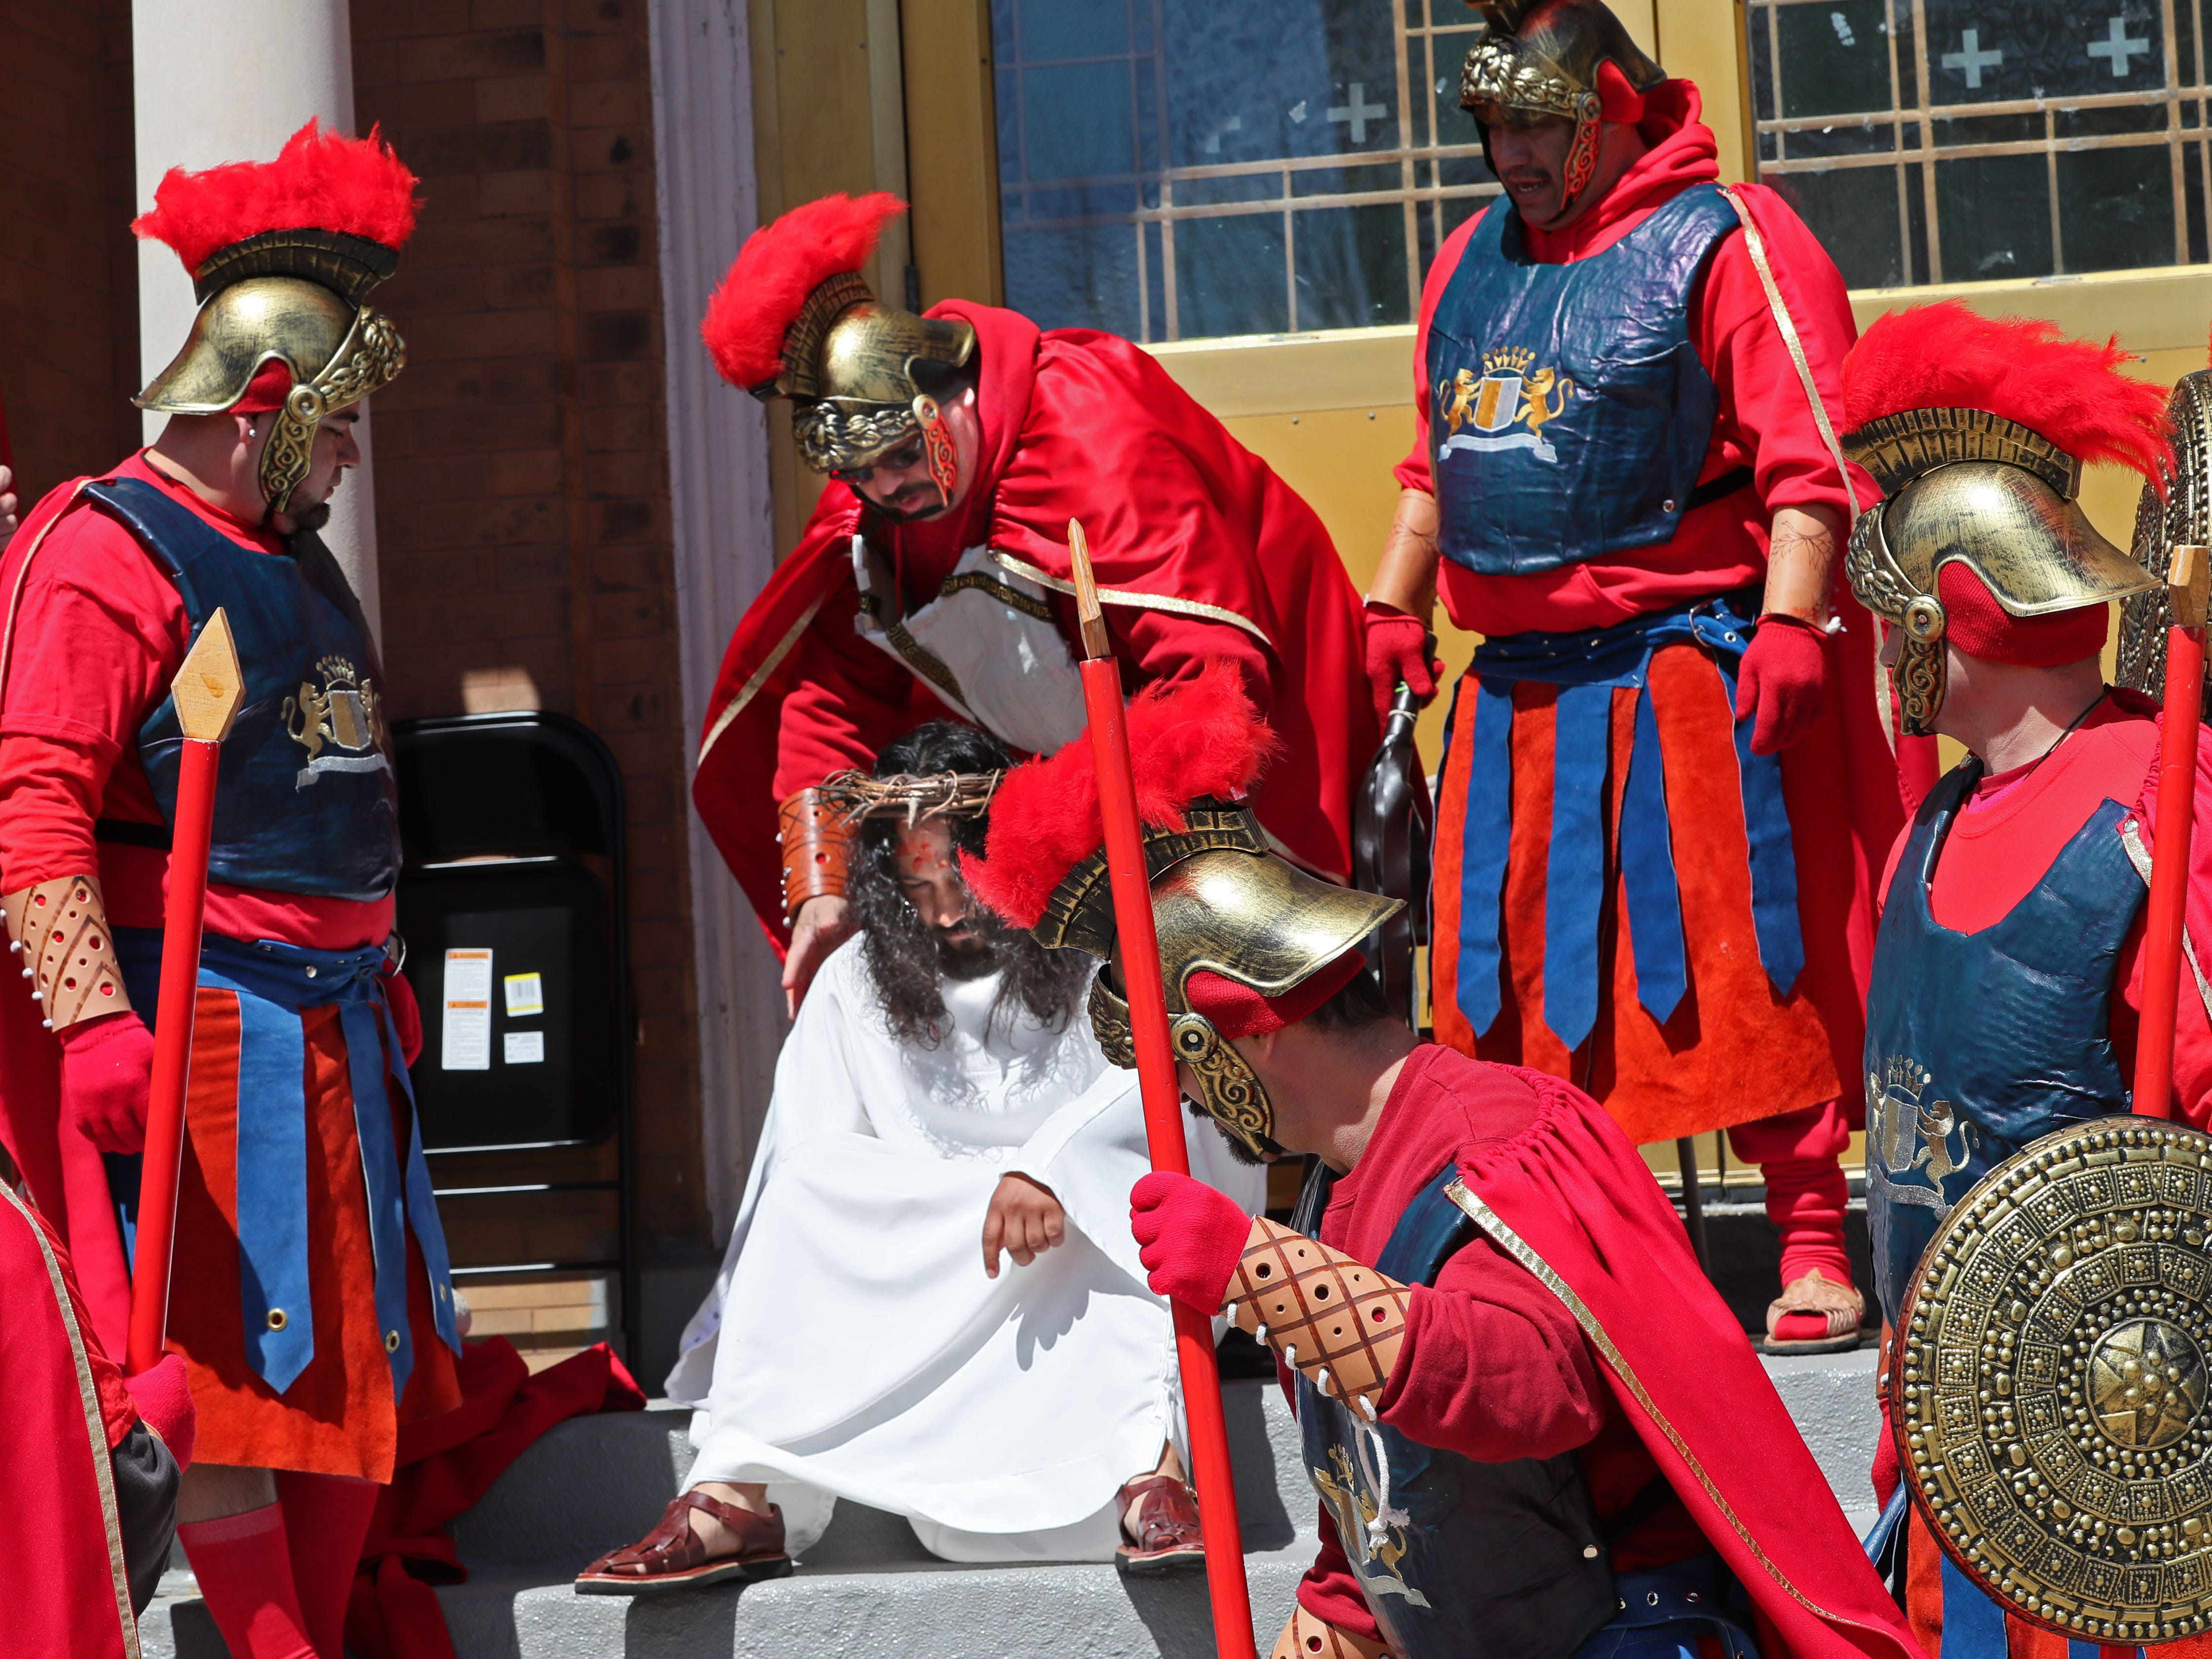 Roman soldiers place a crown of thornes on the head of Jesus during a re-enactment of the Passion of Jesus Christ on Good Friday. Jesus is played by Pedro Rangel of Milwaukee.